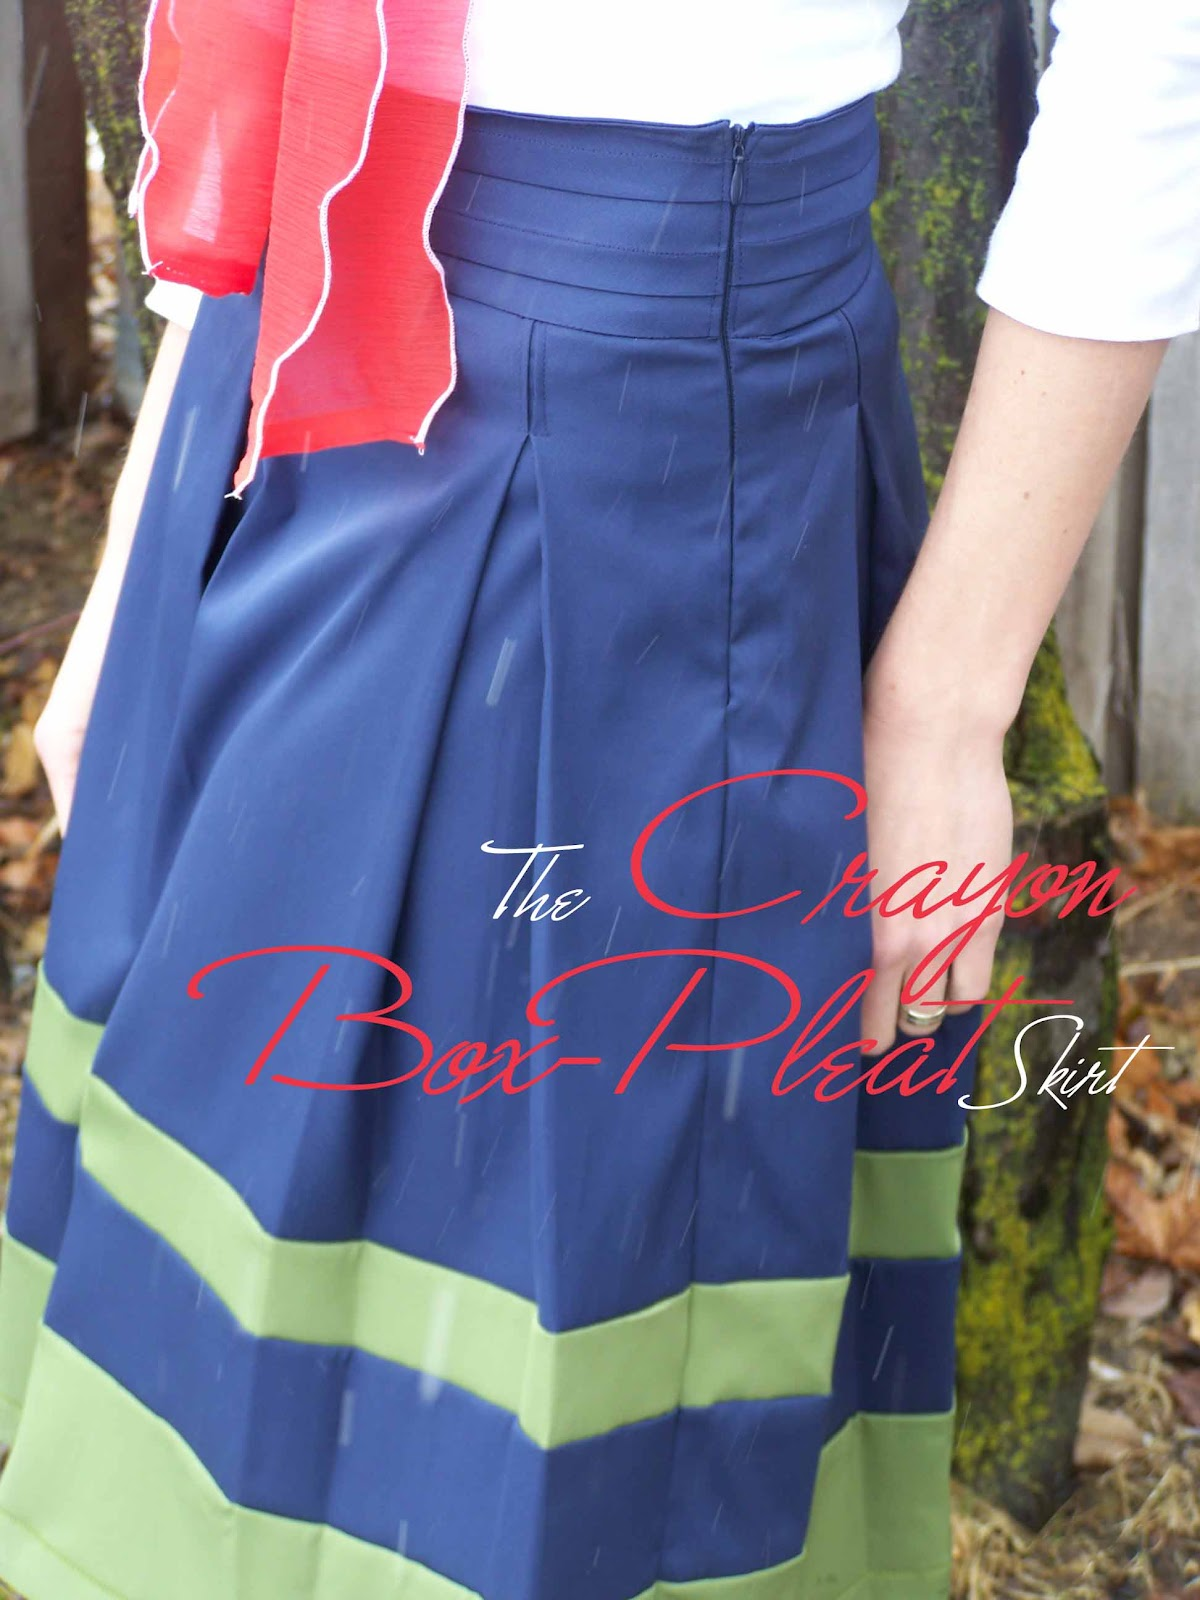 Made by Me. Shared with you.: The Crayon Box Pleat Skirt: Tutorial ...